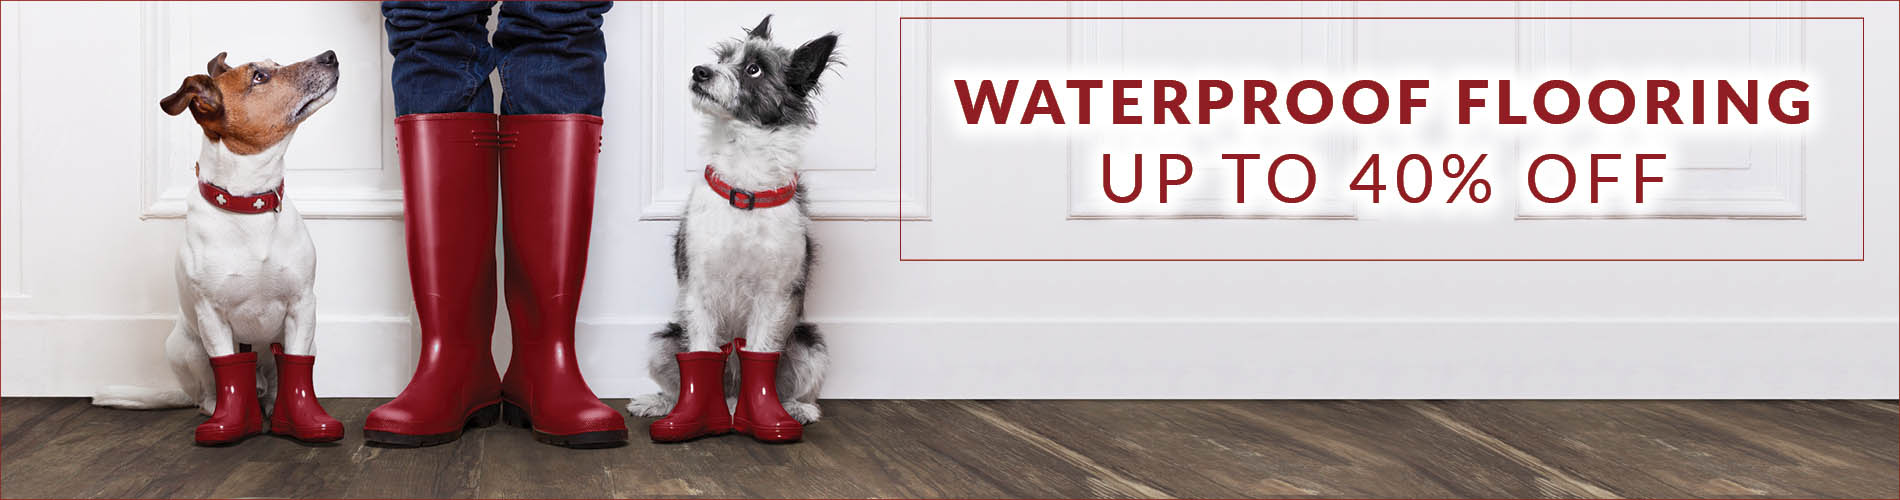 Waterproof Flooring up to 40% OFF this month at Flooring USA in Stuart.